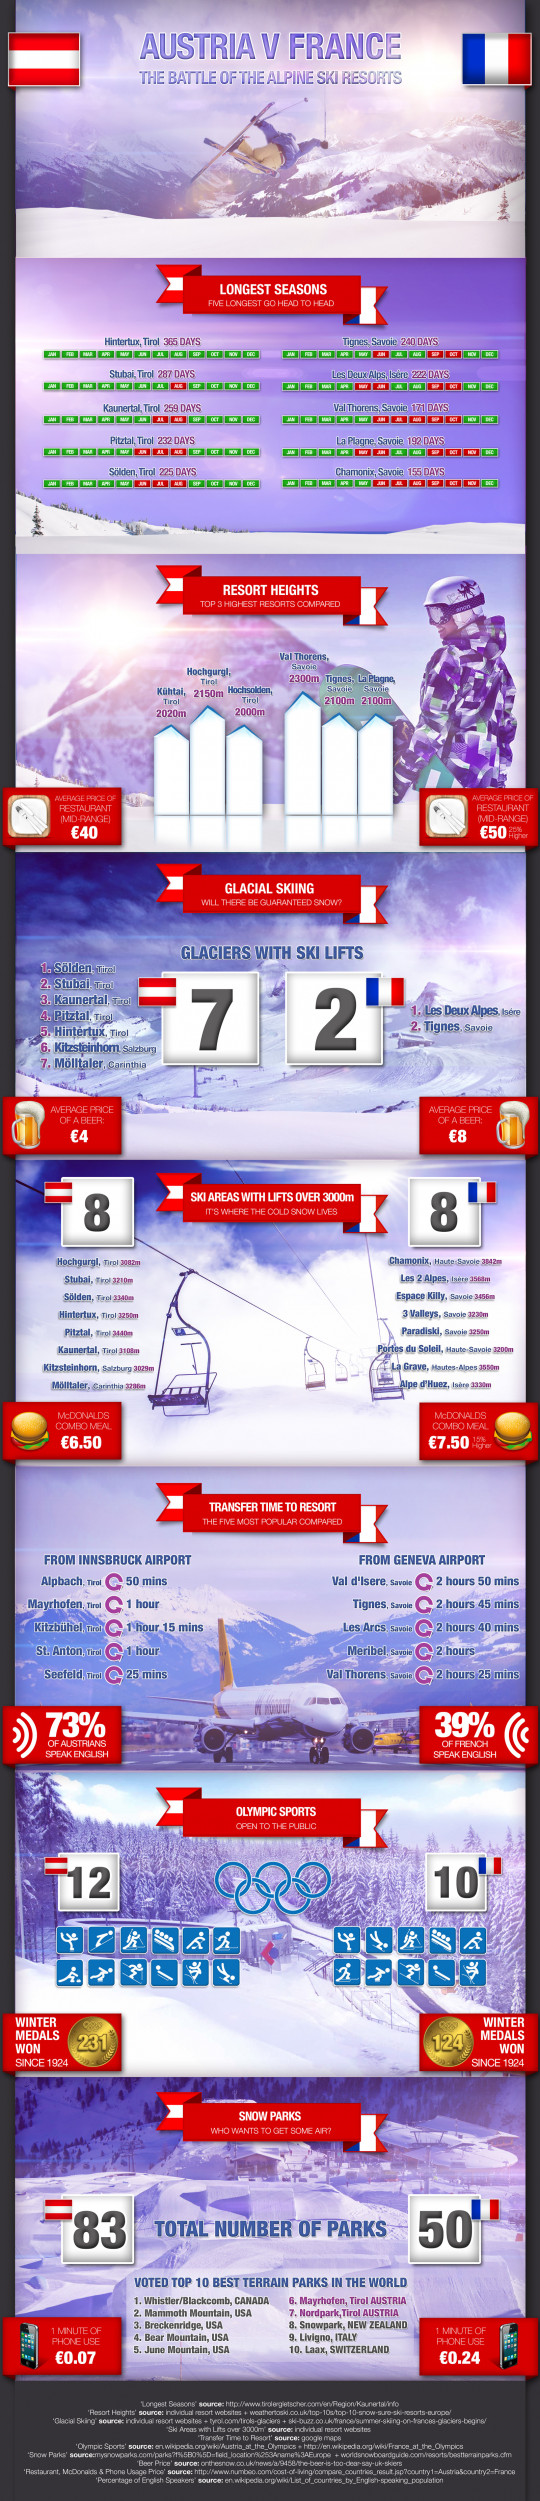 Austria v France: how the skiing and snowboarding stack up.